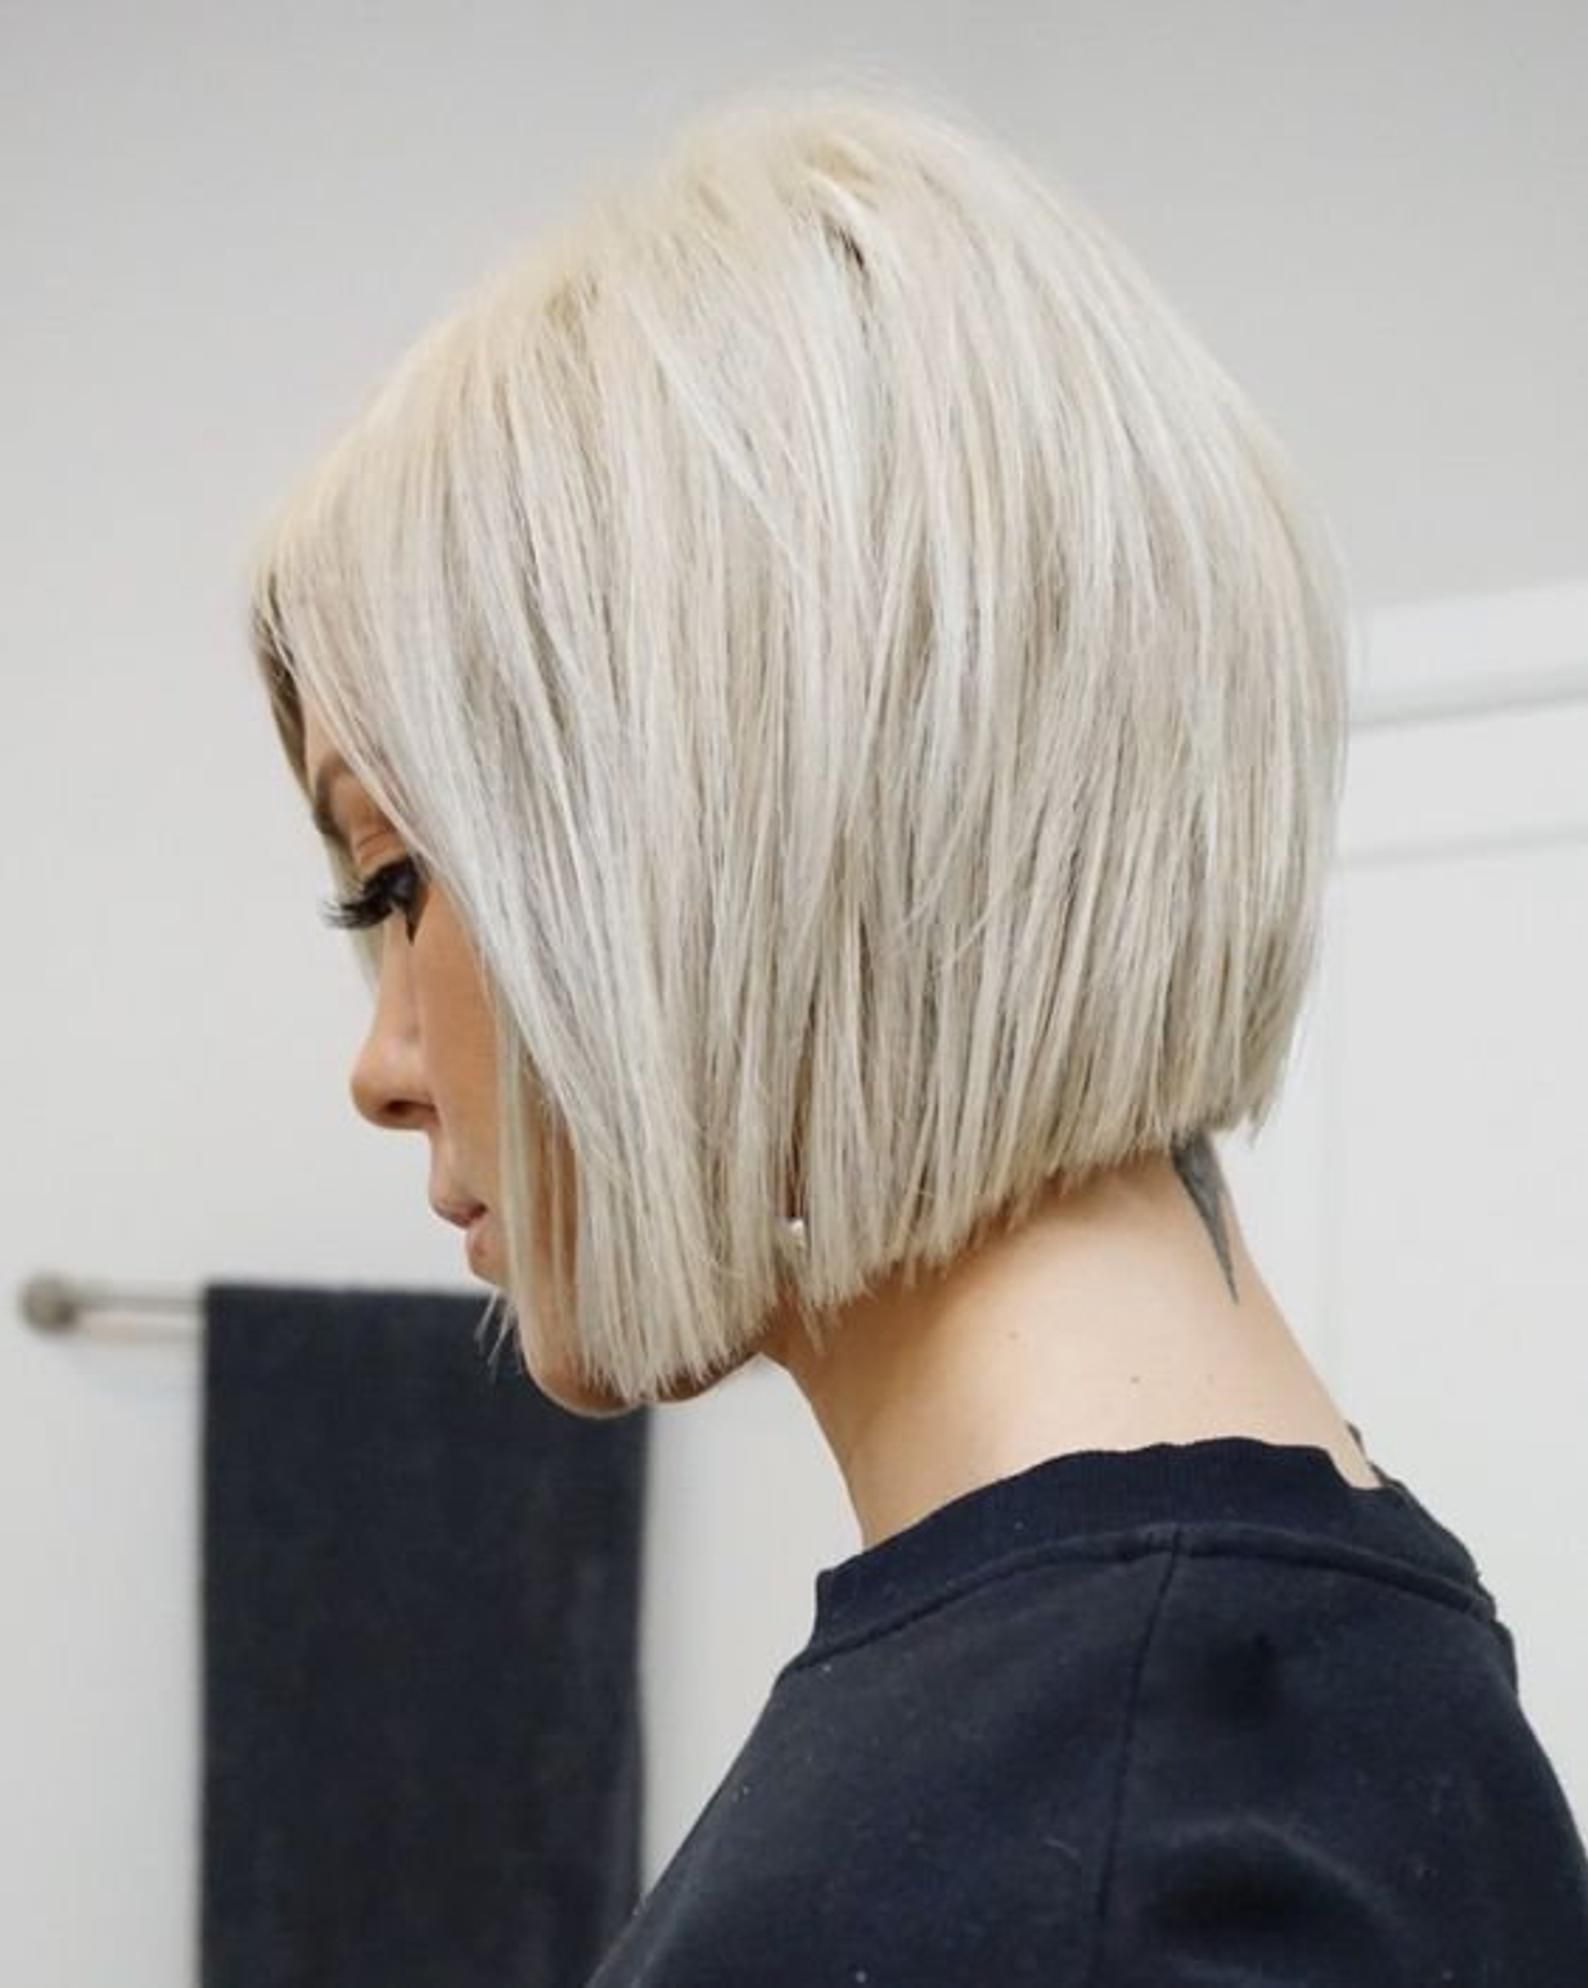 Lace Front Wigs Bob Wigs Platinum Blonde Wig Short Blonde Wig Etsy Bob Hairstyles Bobs For Thin Hair Hair Maintenance